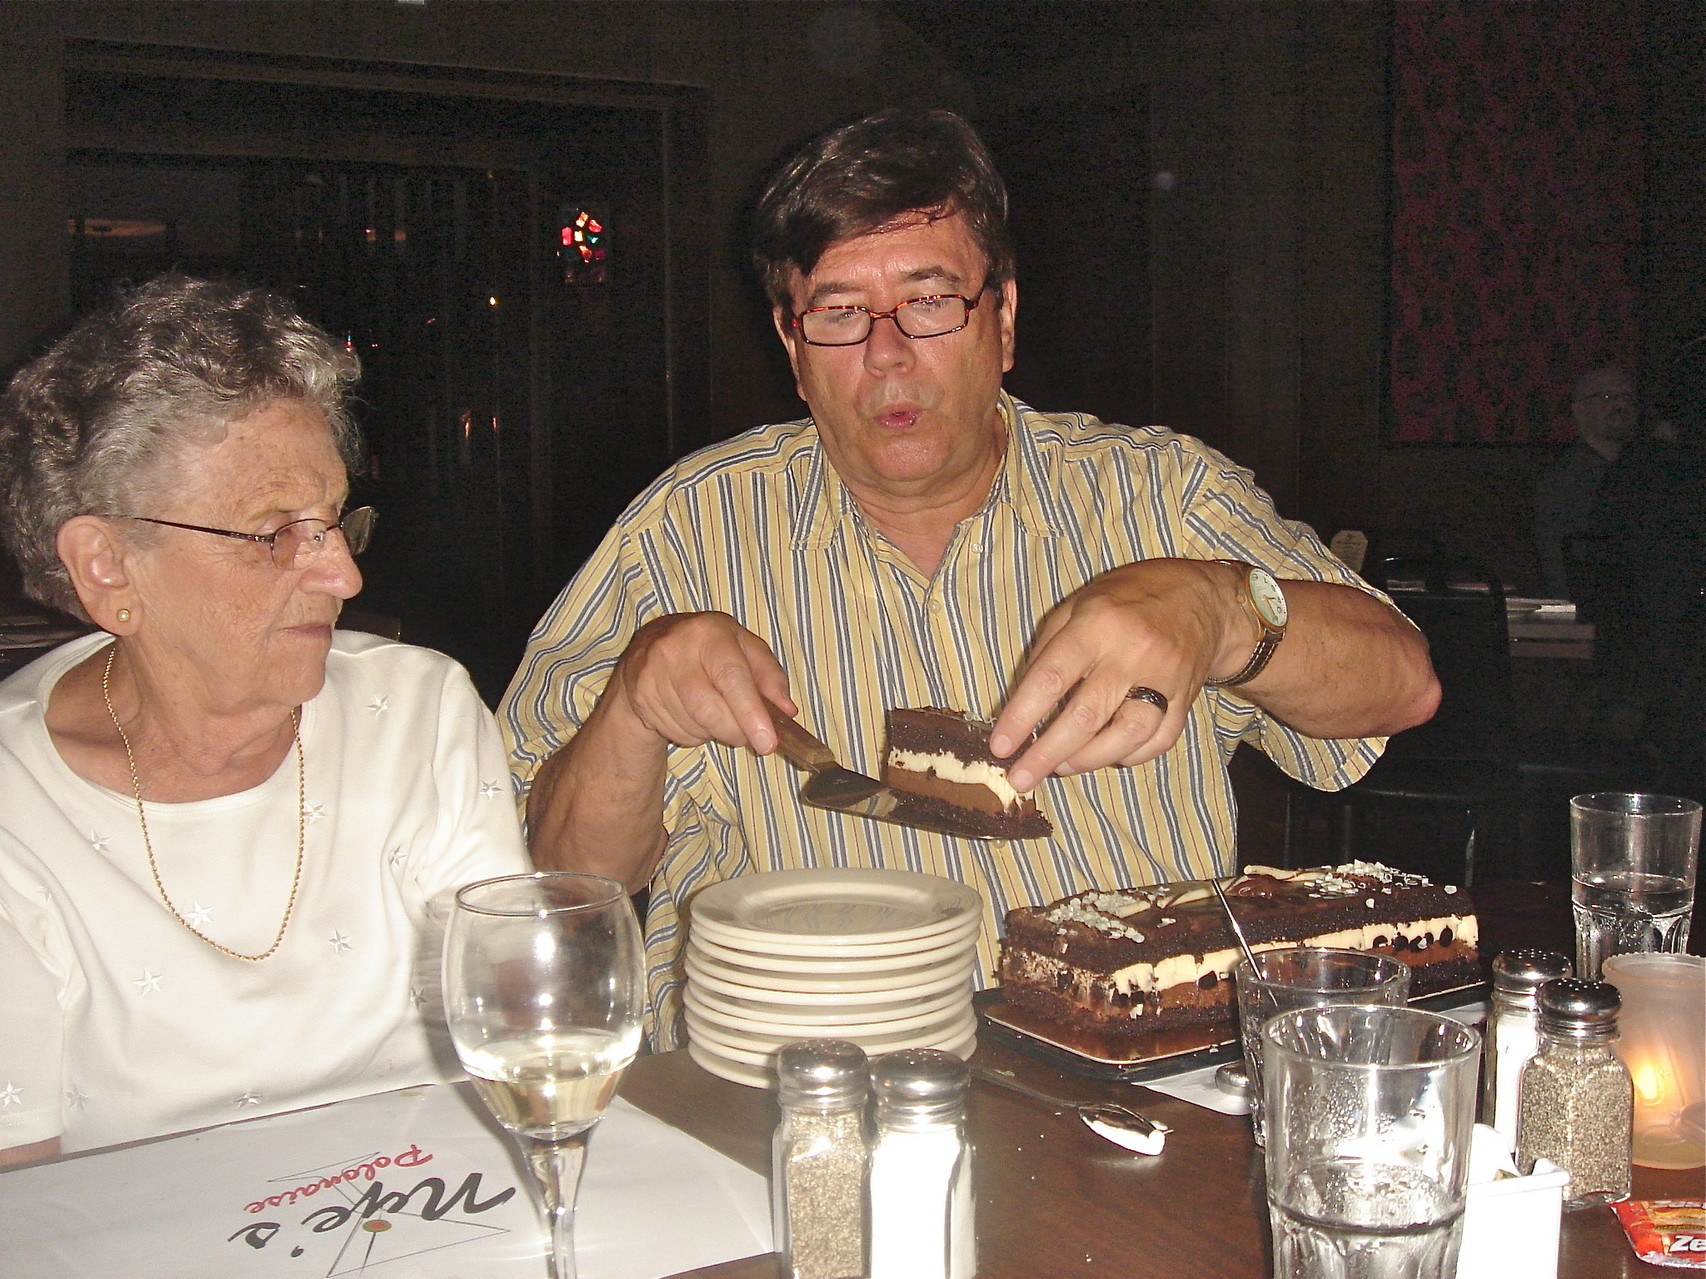 John cuts the cake as Mary Lou looks on.